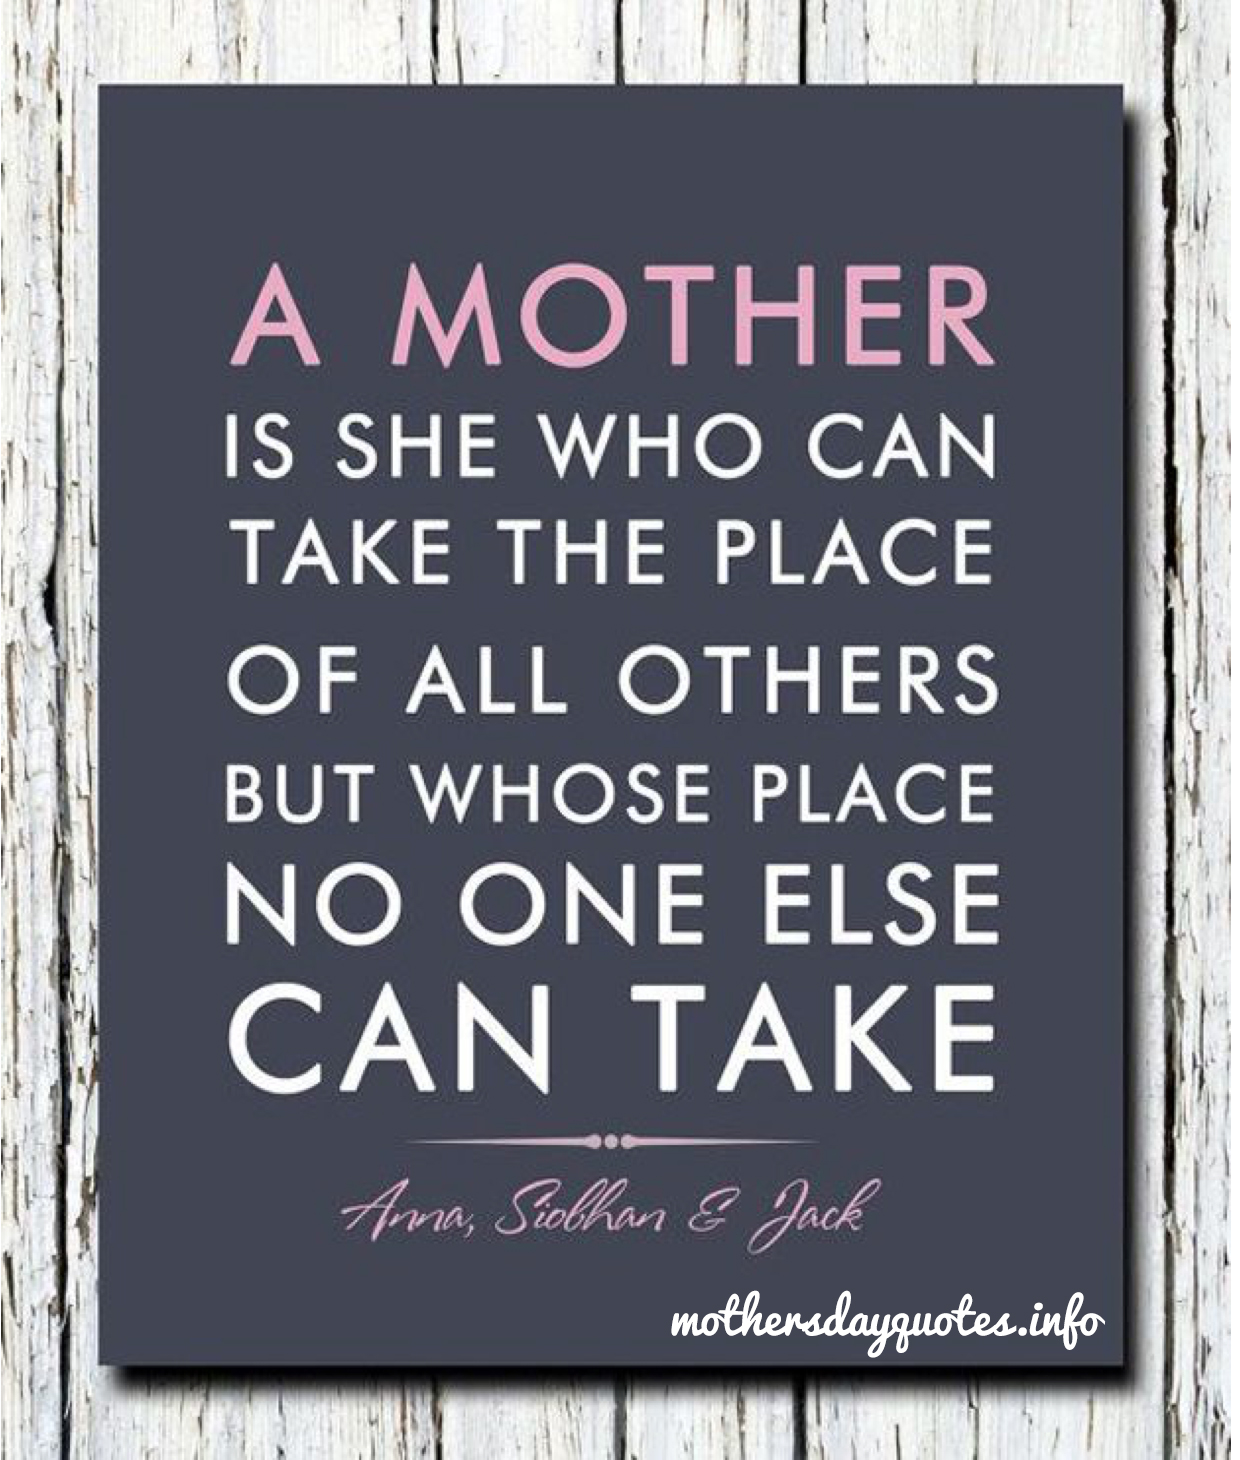 Mother Day Quotes Happy Mother's Day 2017 Quotes For Cards  Happy Mothers Day 2017